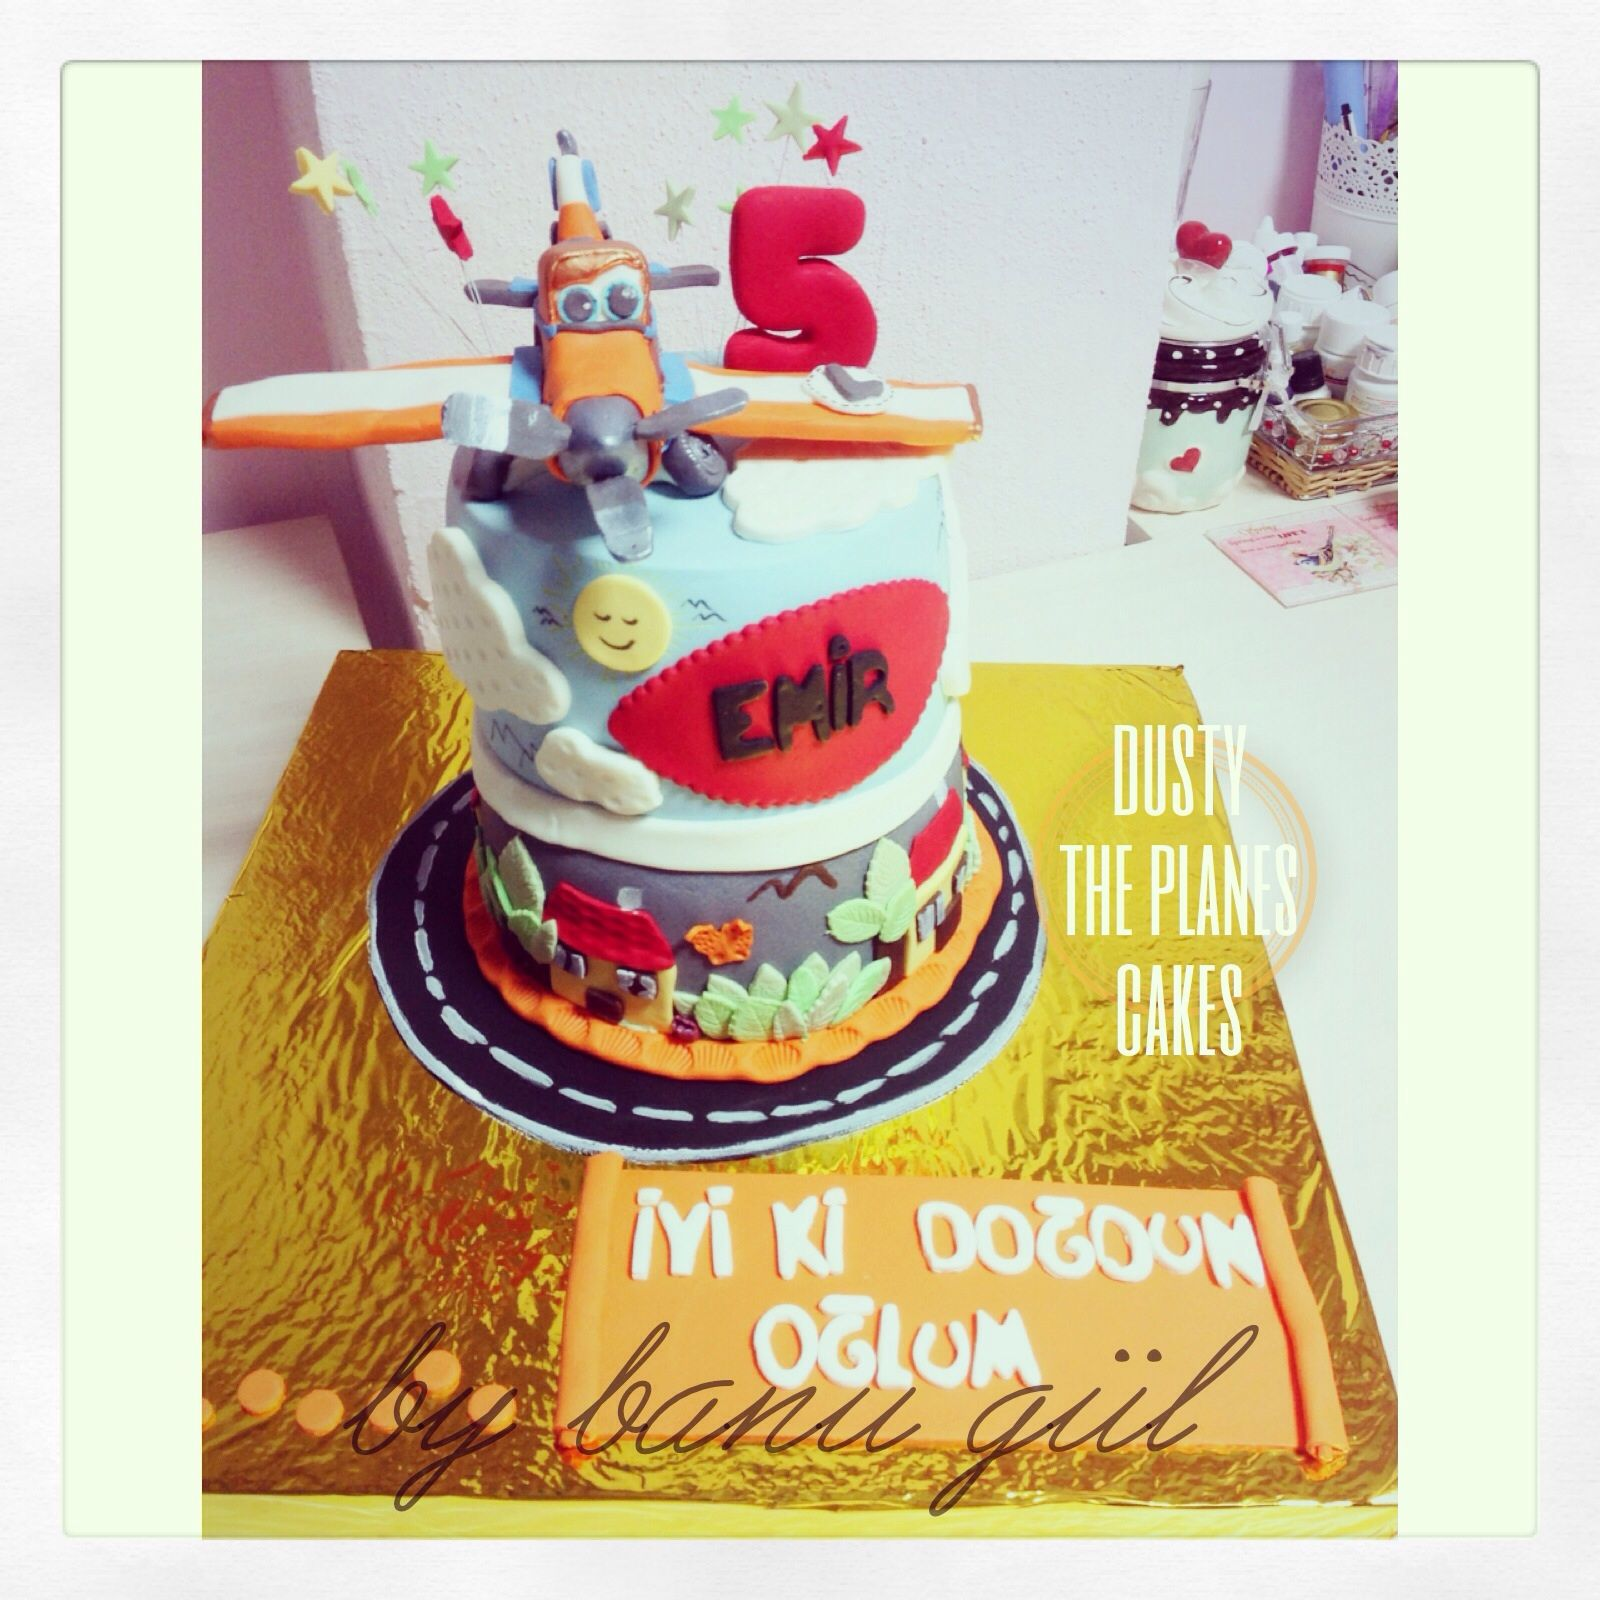 Enjoyable The Planes Cakes Dusty The Plane Birthday Cake For 5 Years Old Personalised Birthday Cards Veneteletsinfo